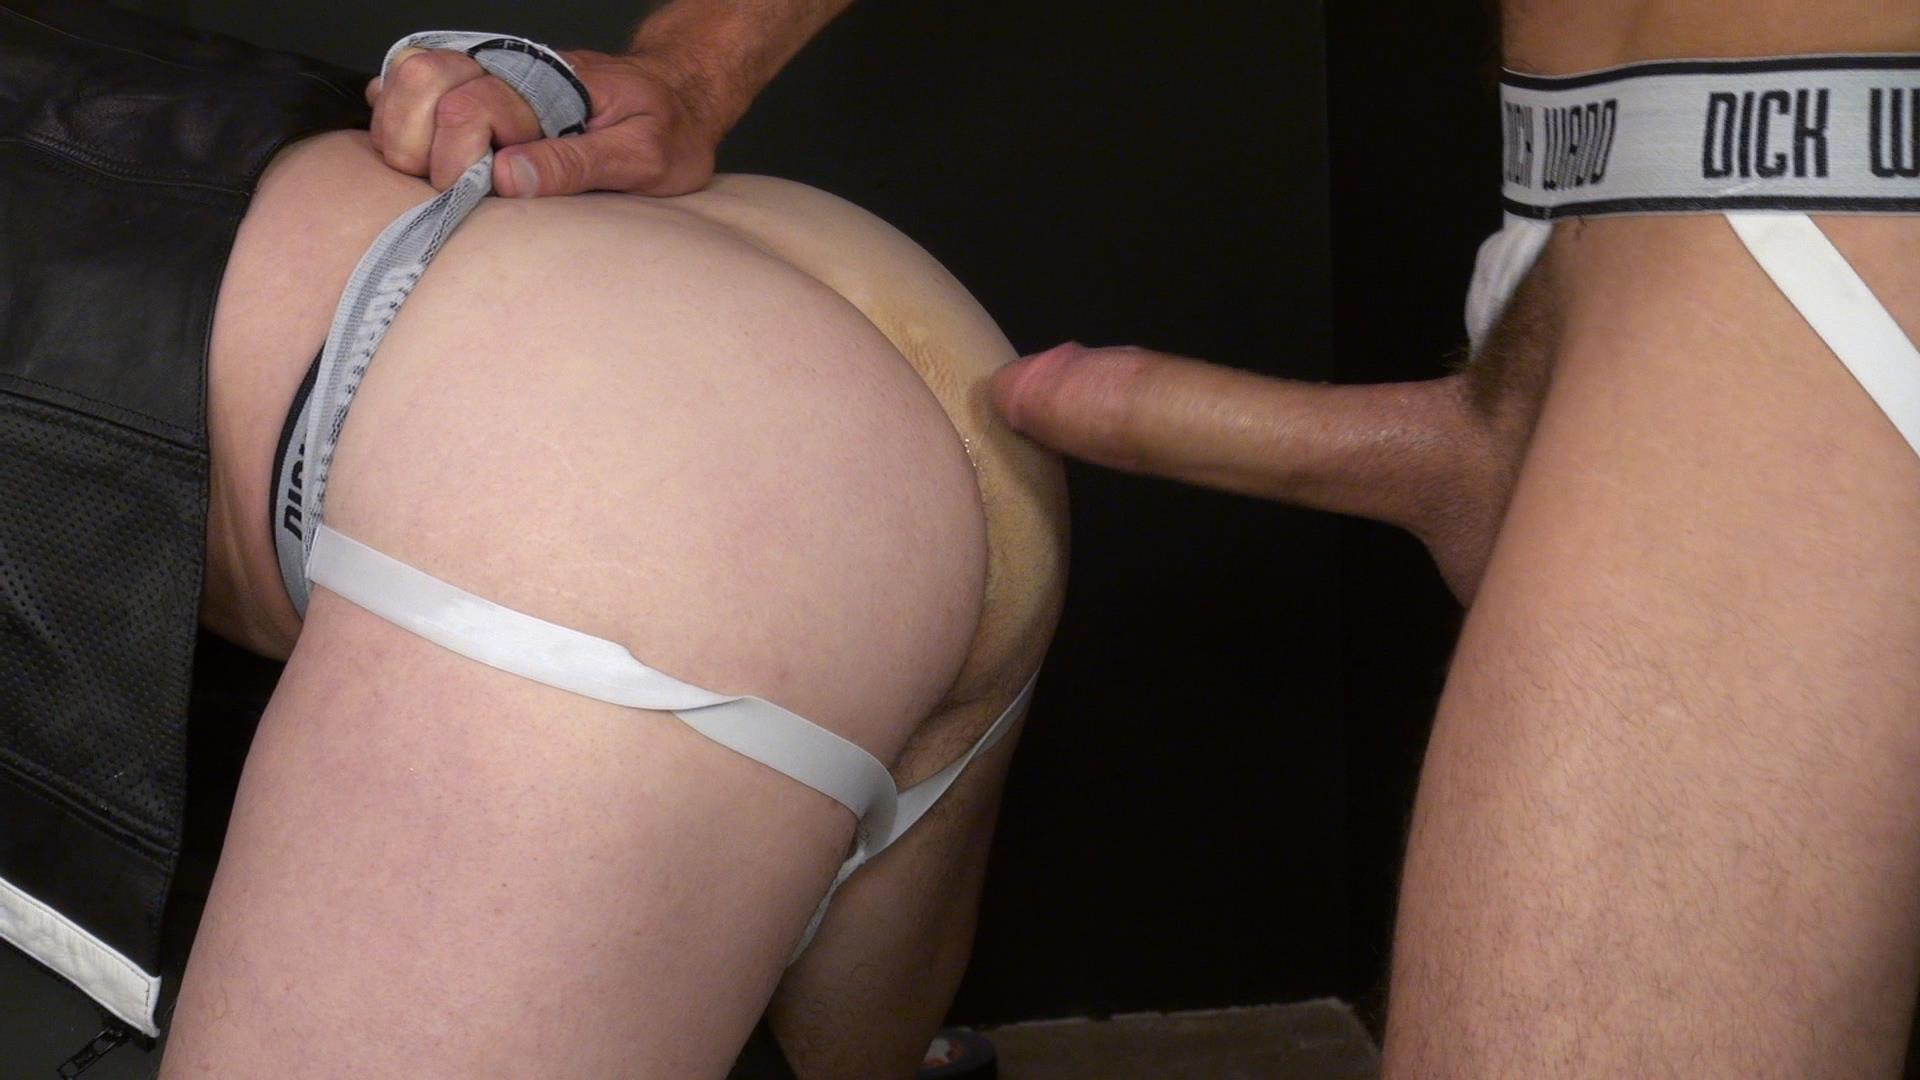 Raw and Rough Nick Roberts and Jason Stormme and Super Steve Bareback Bathhouse Amateur Gay Porn 15